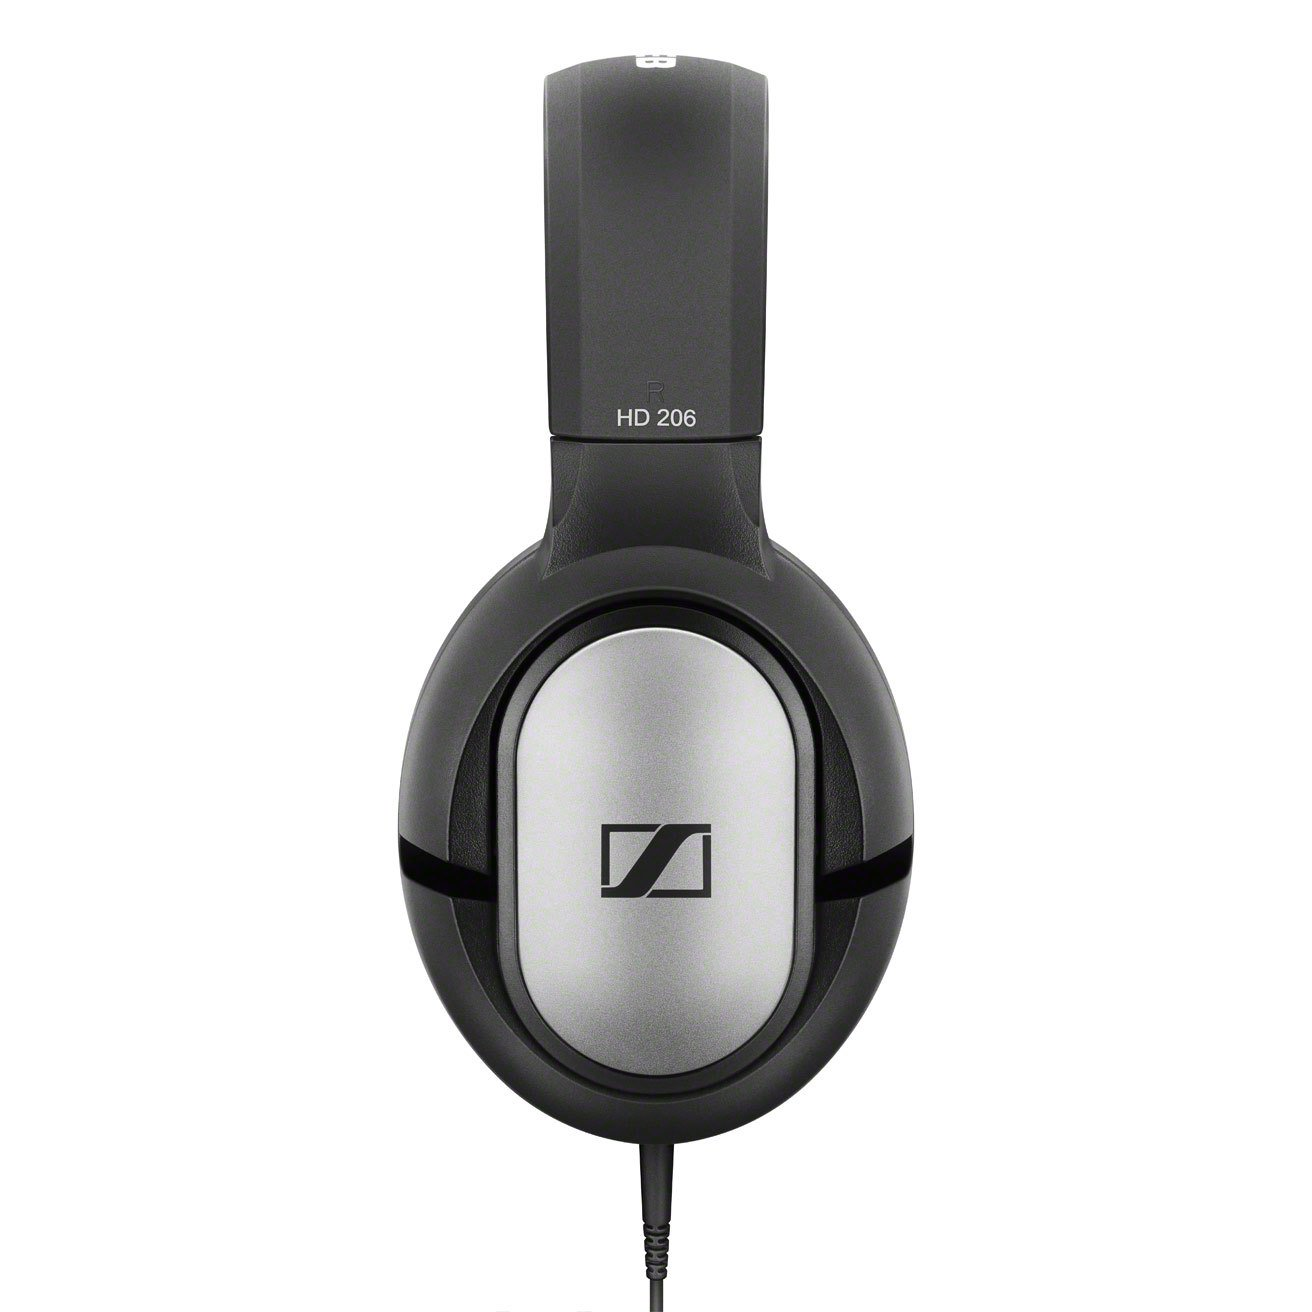 a3589af9374 Sennheiser HD 206 Lightweight Headphones, HD 206 Has Noise Attenuation